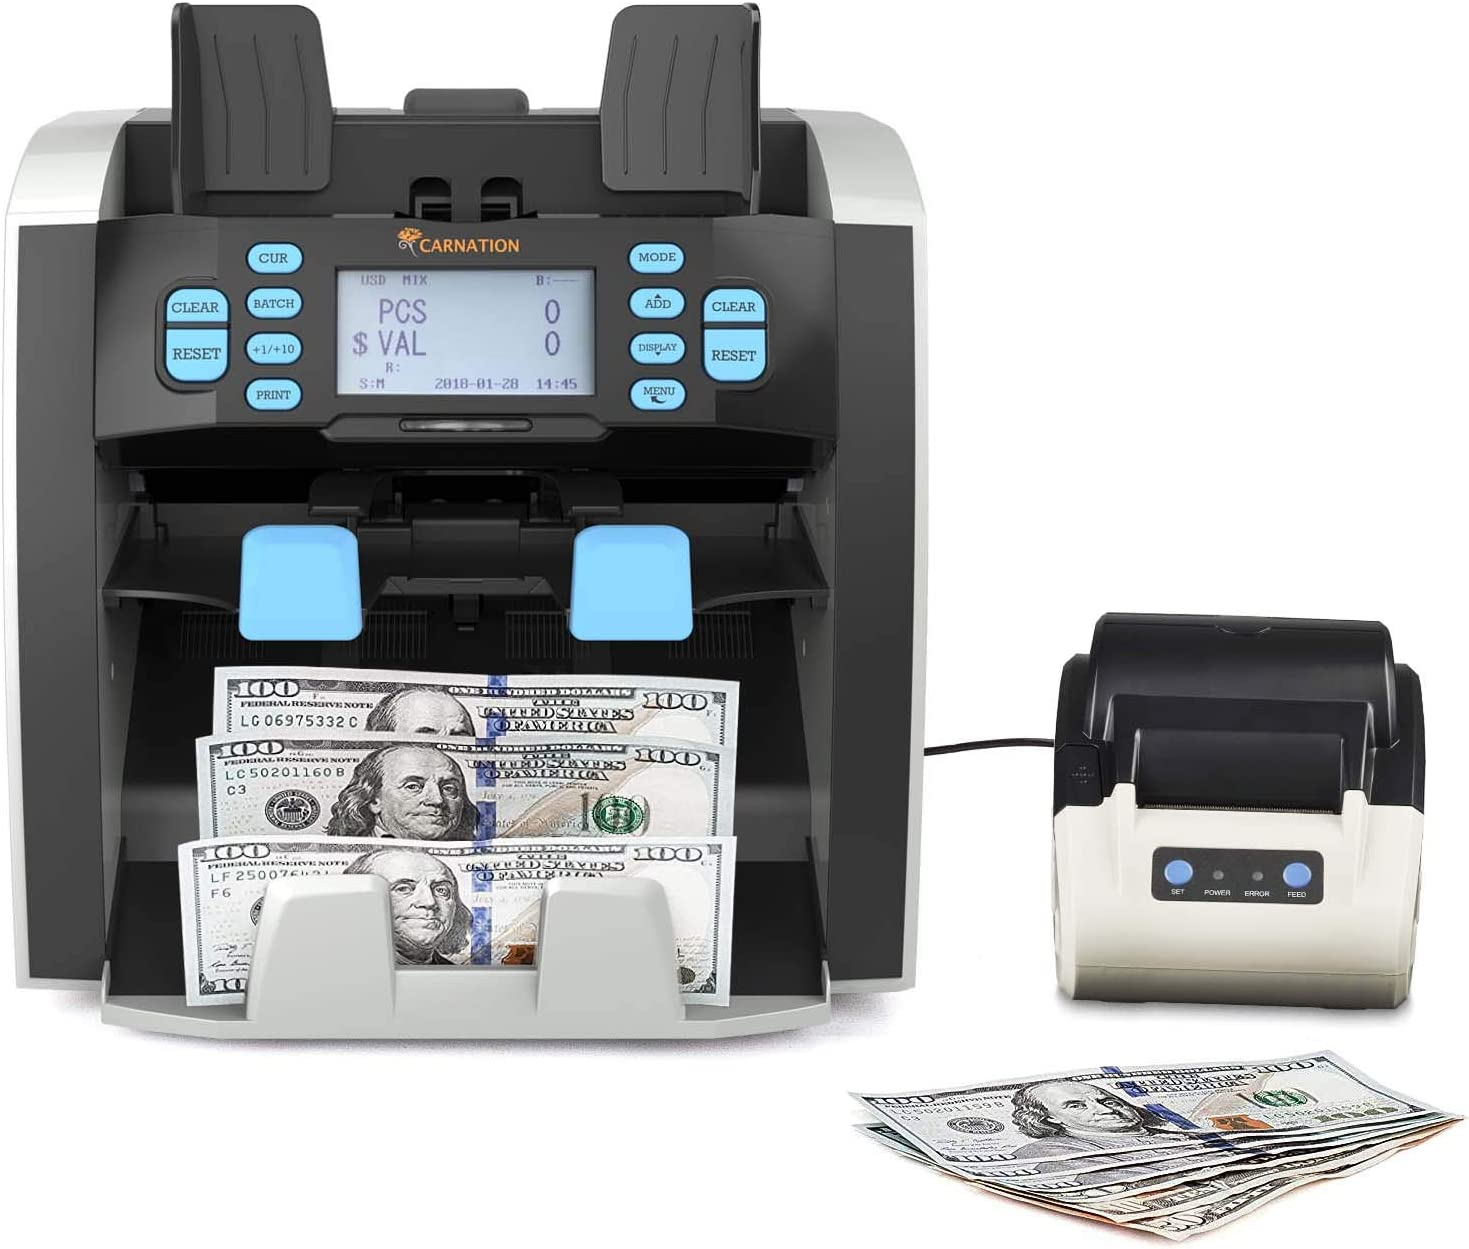 Bank Grade Mixed Denomination Bill Counter and Sorter CR1500 with Printer - Full Spectrum Counterfeit Detection PC Suite 2 Year Warranty